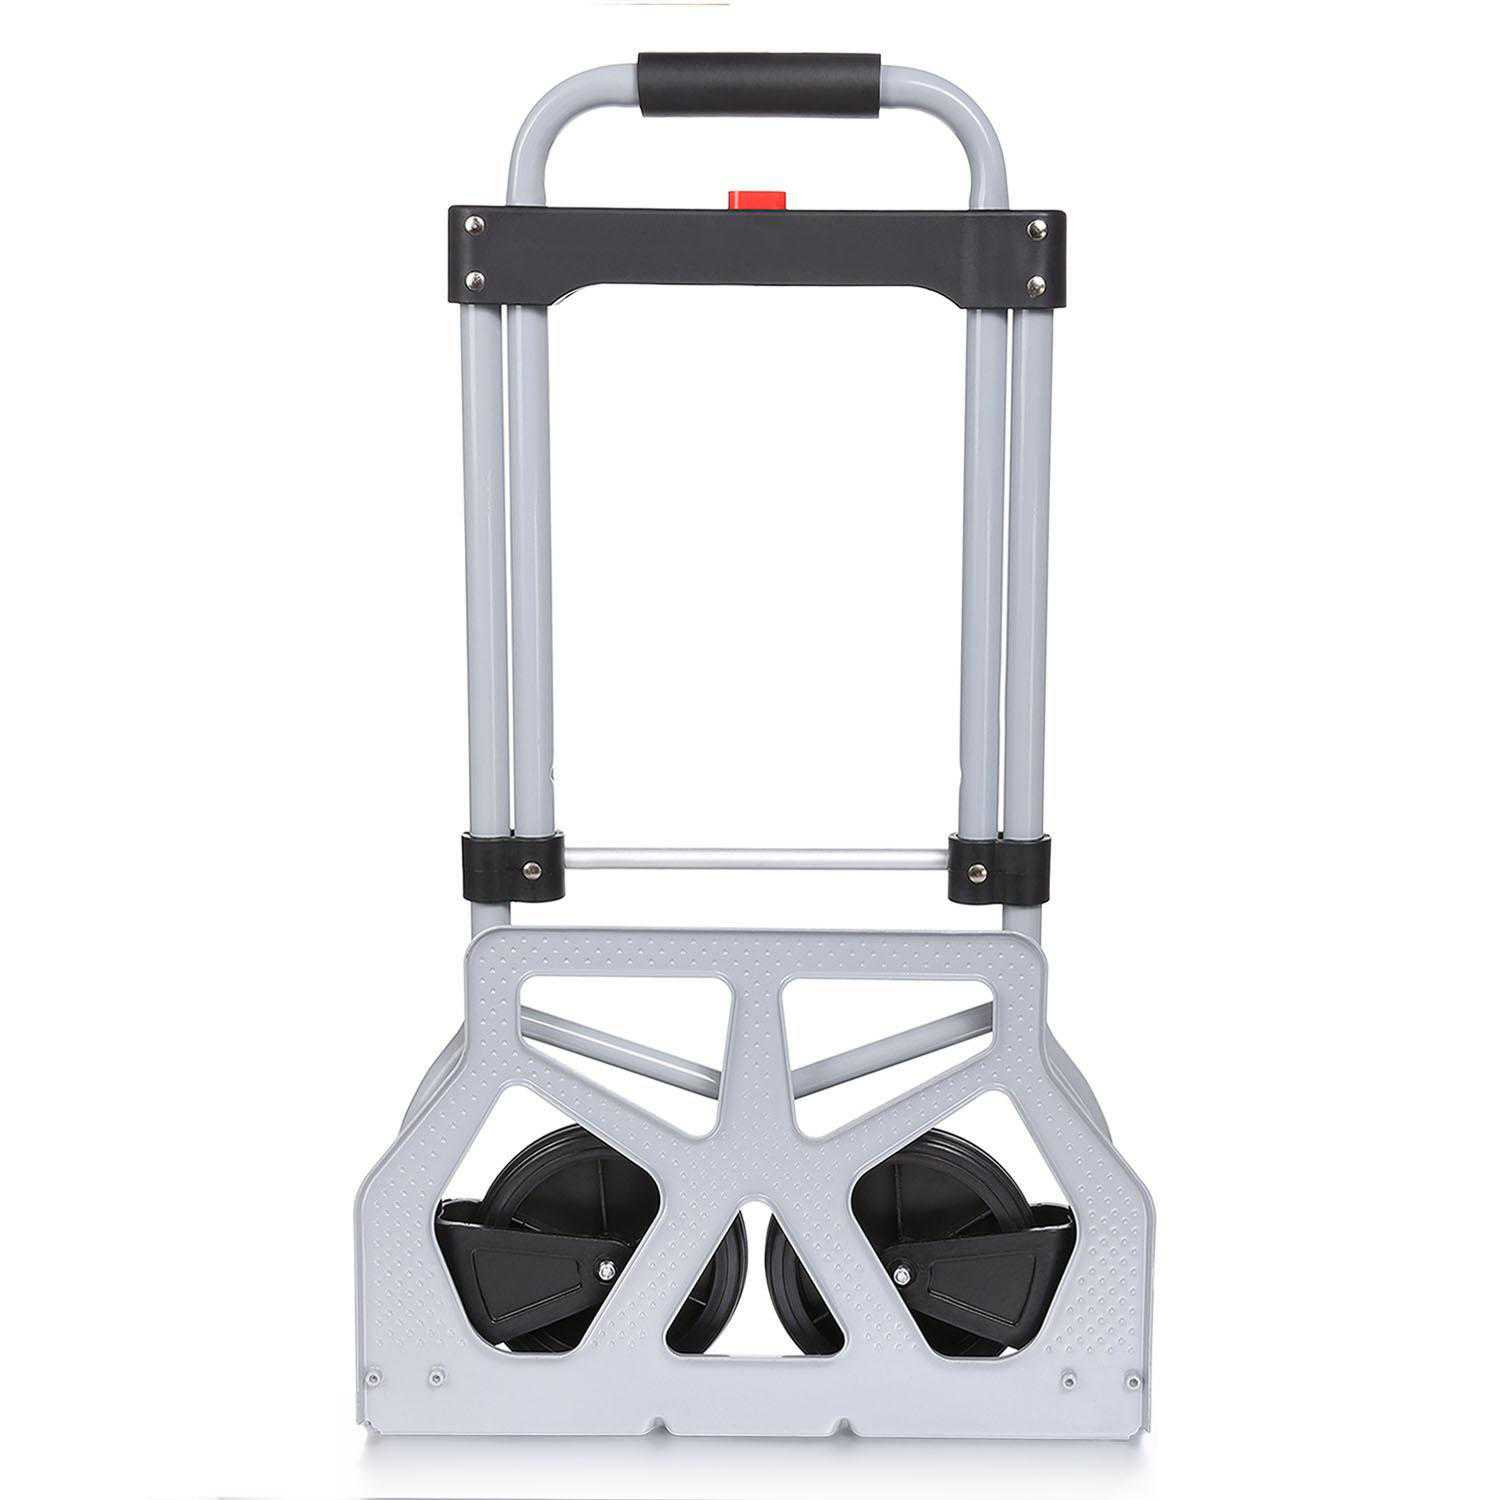 Portable Folding Hand Truck Dolly Luggage Carts, Silver, 220 lbs Capacity, Industrial/Travel/Shopping CCGE